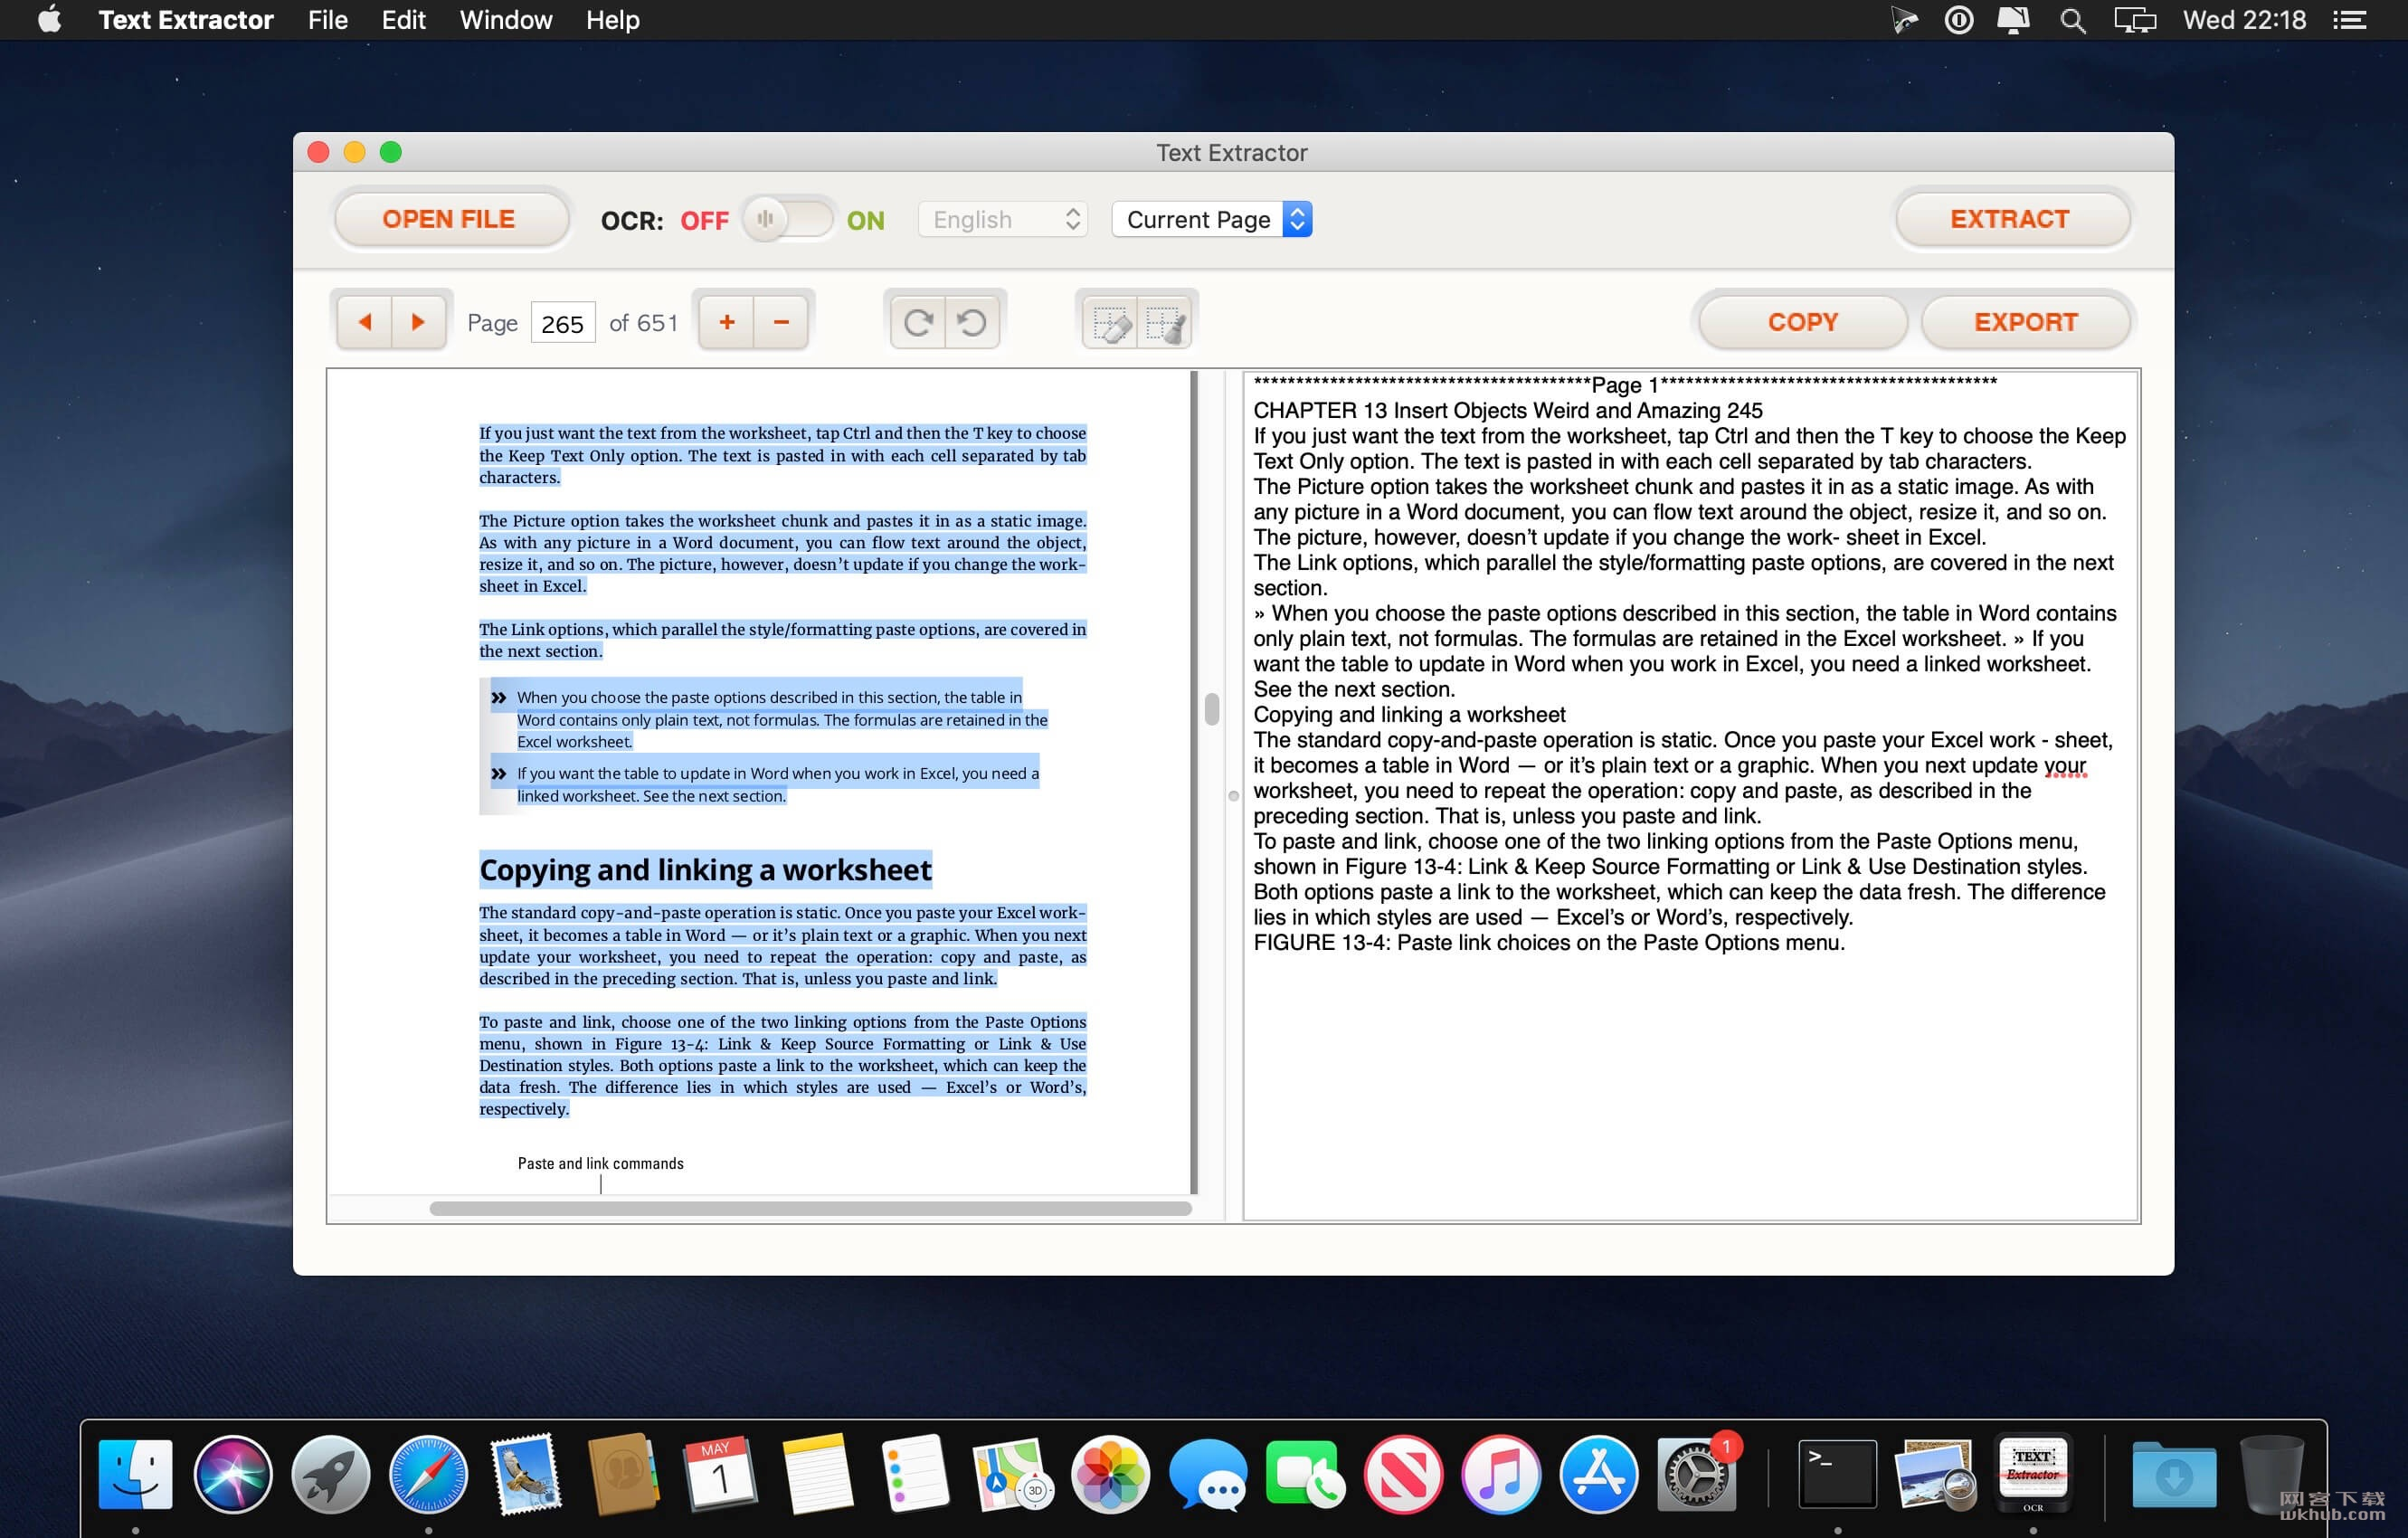 Text Extractor 1.6.0 PDF文字提取工具